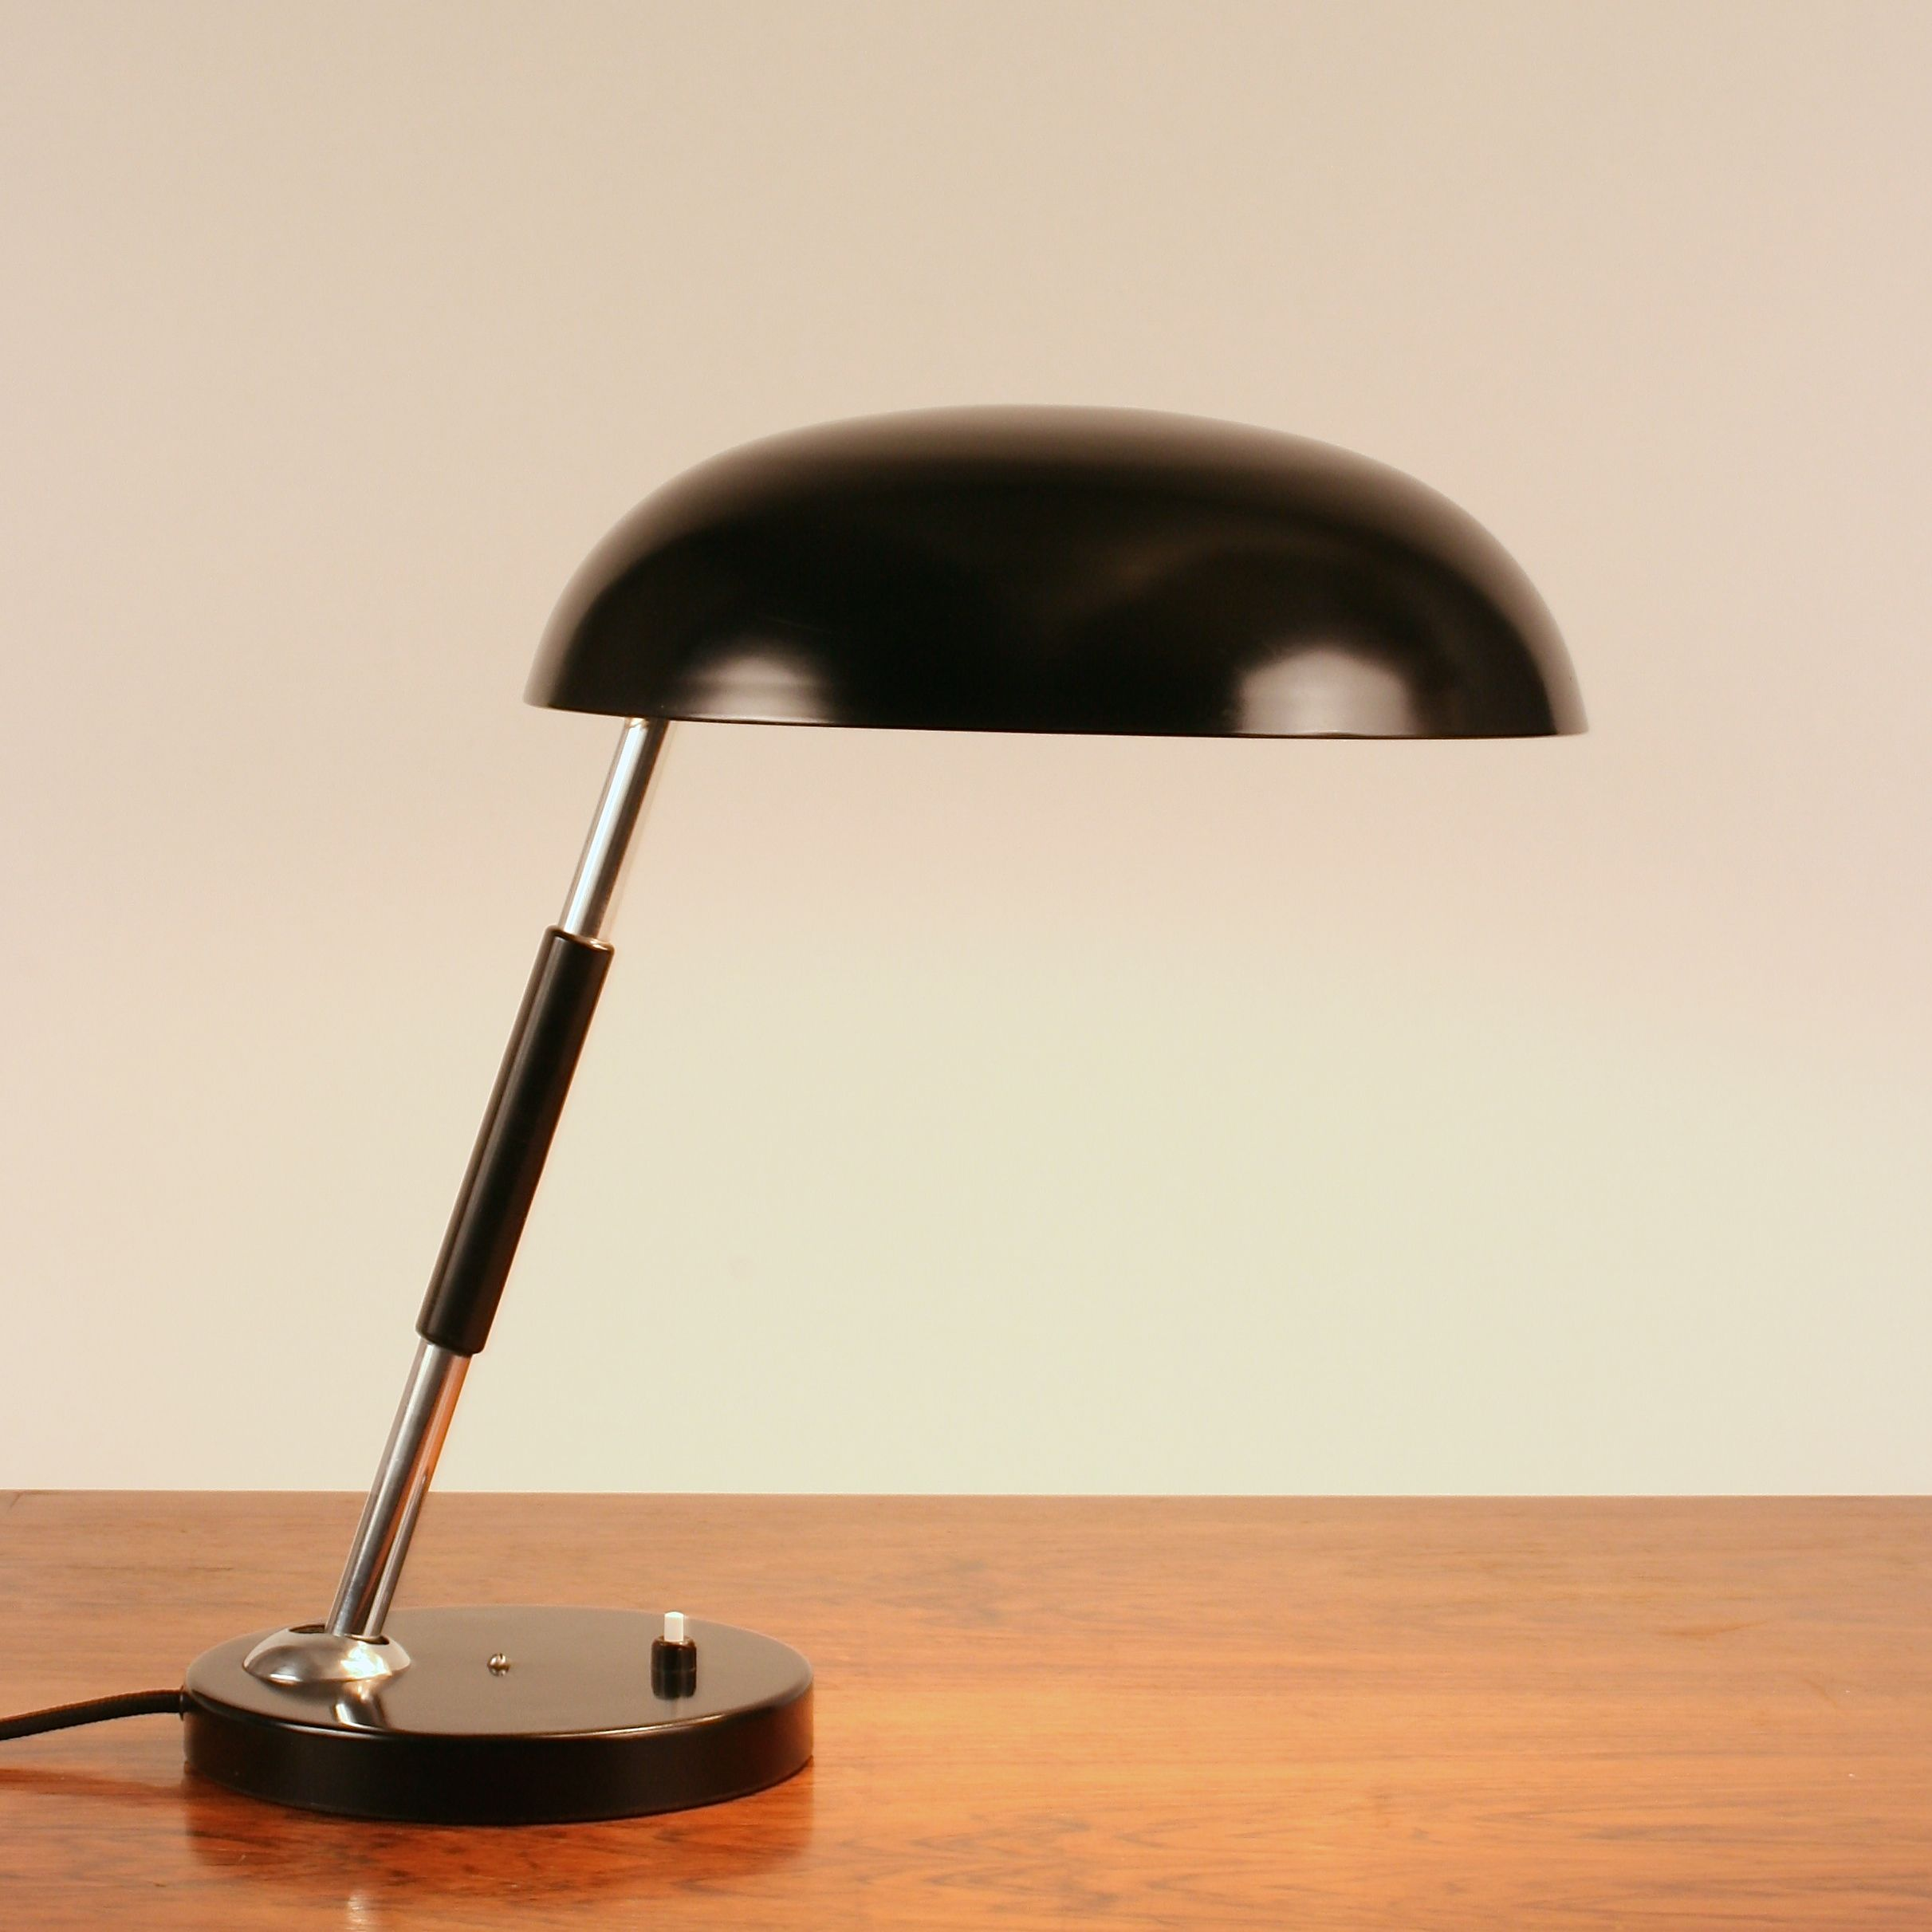 Black Bauhaus Desk Lamp By Bünte Remmler Bur 2696 Germany 1960 S Lámparas